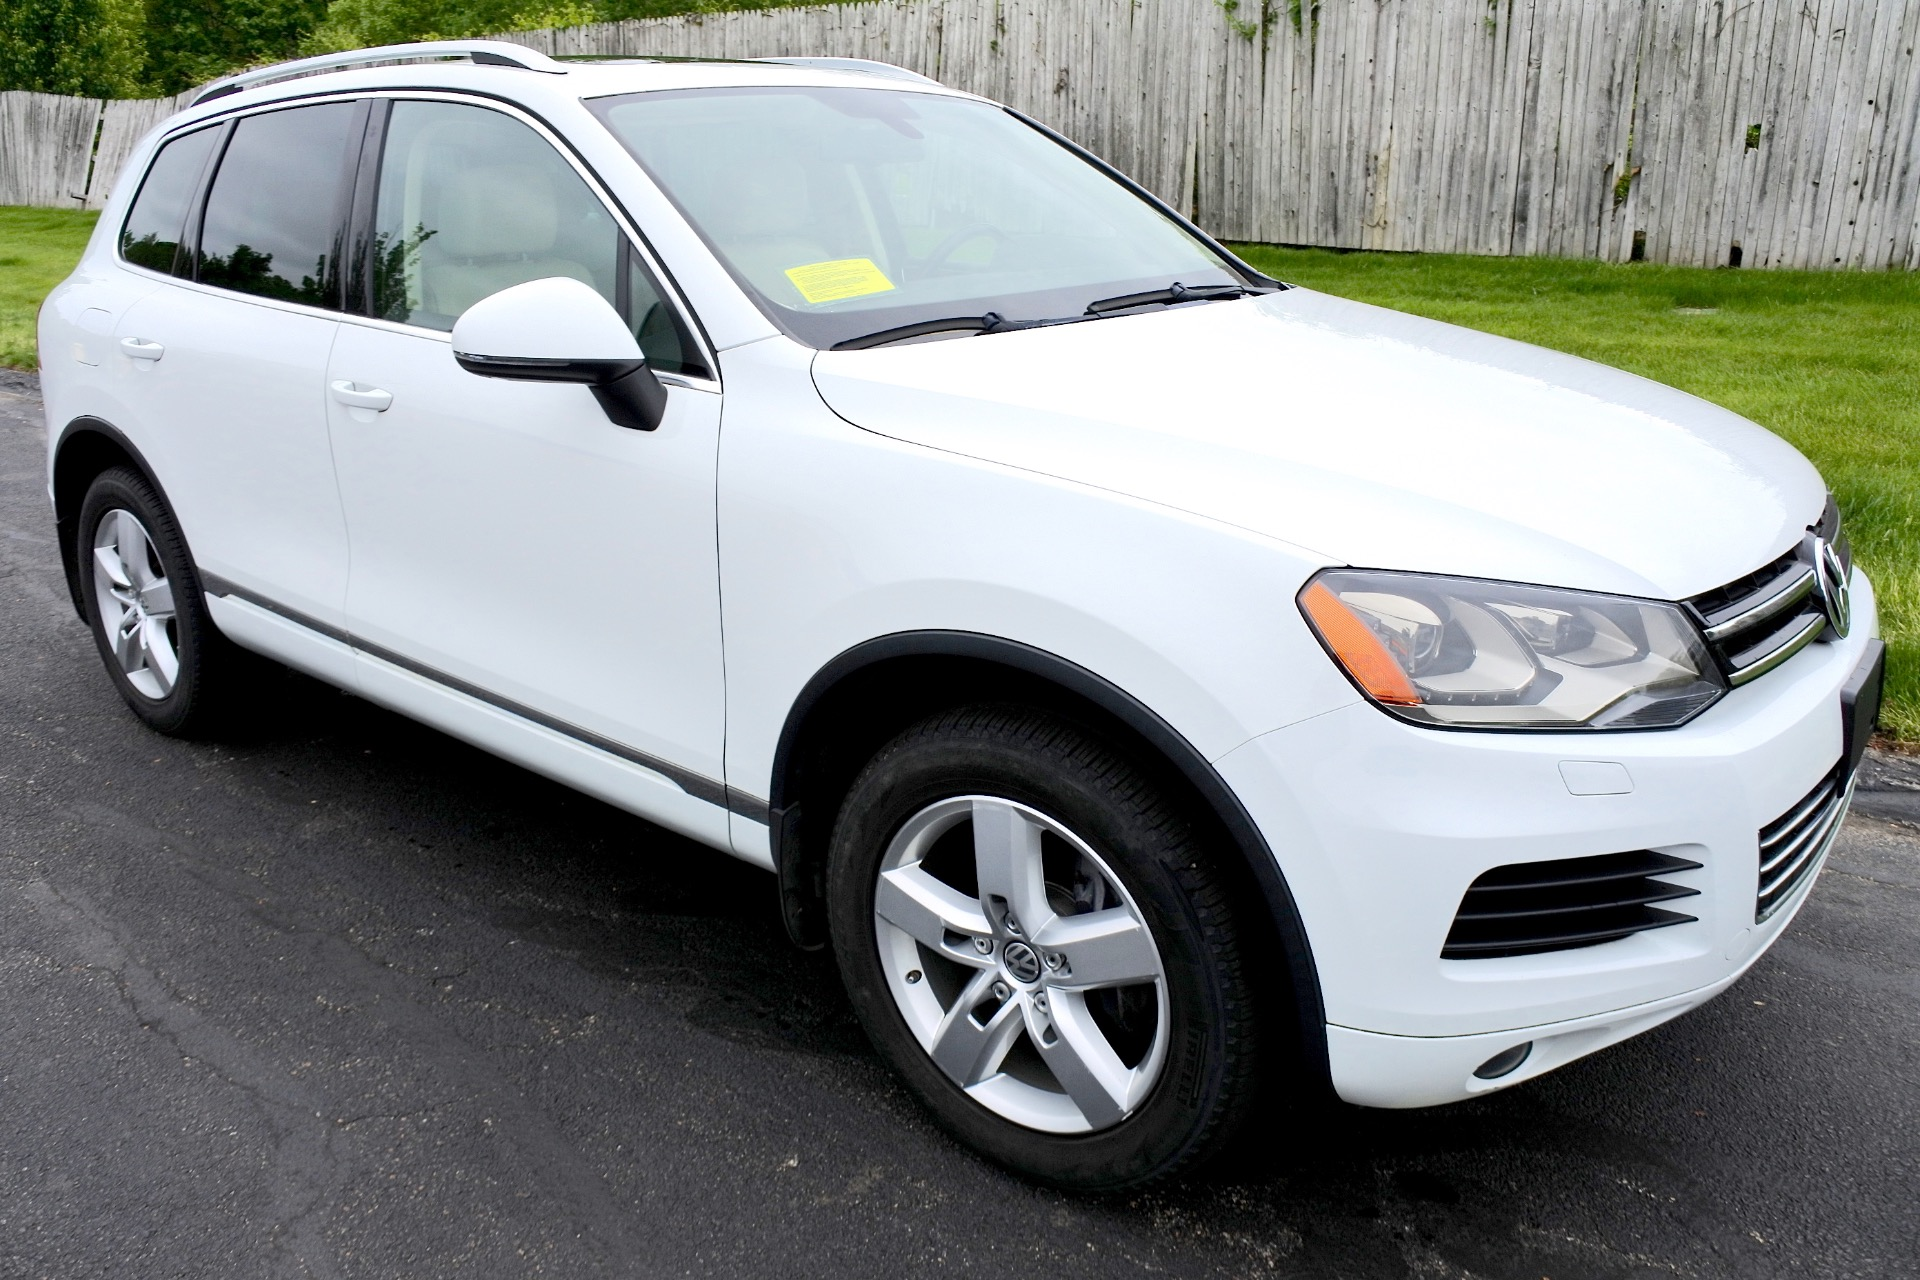 Used 2012 Volkswagen Touareg TDI Lux Used 2012 Volkswagen Touareg TDI Lux for sale  at Metro West Motorcars LLC in Shrewsbury MA 7